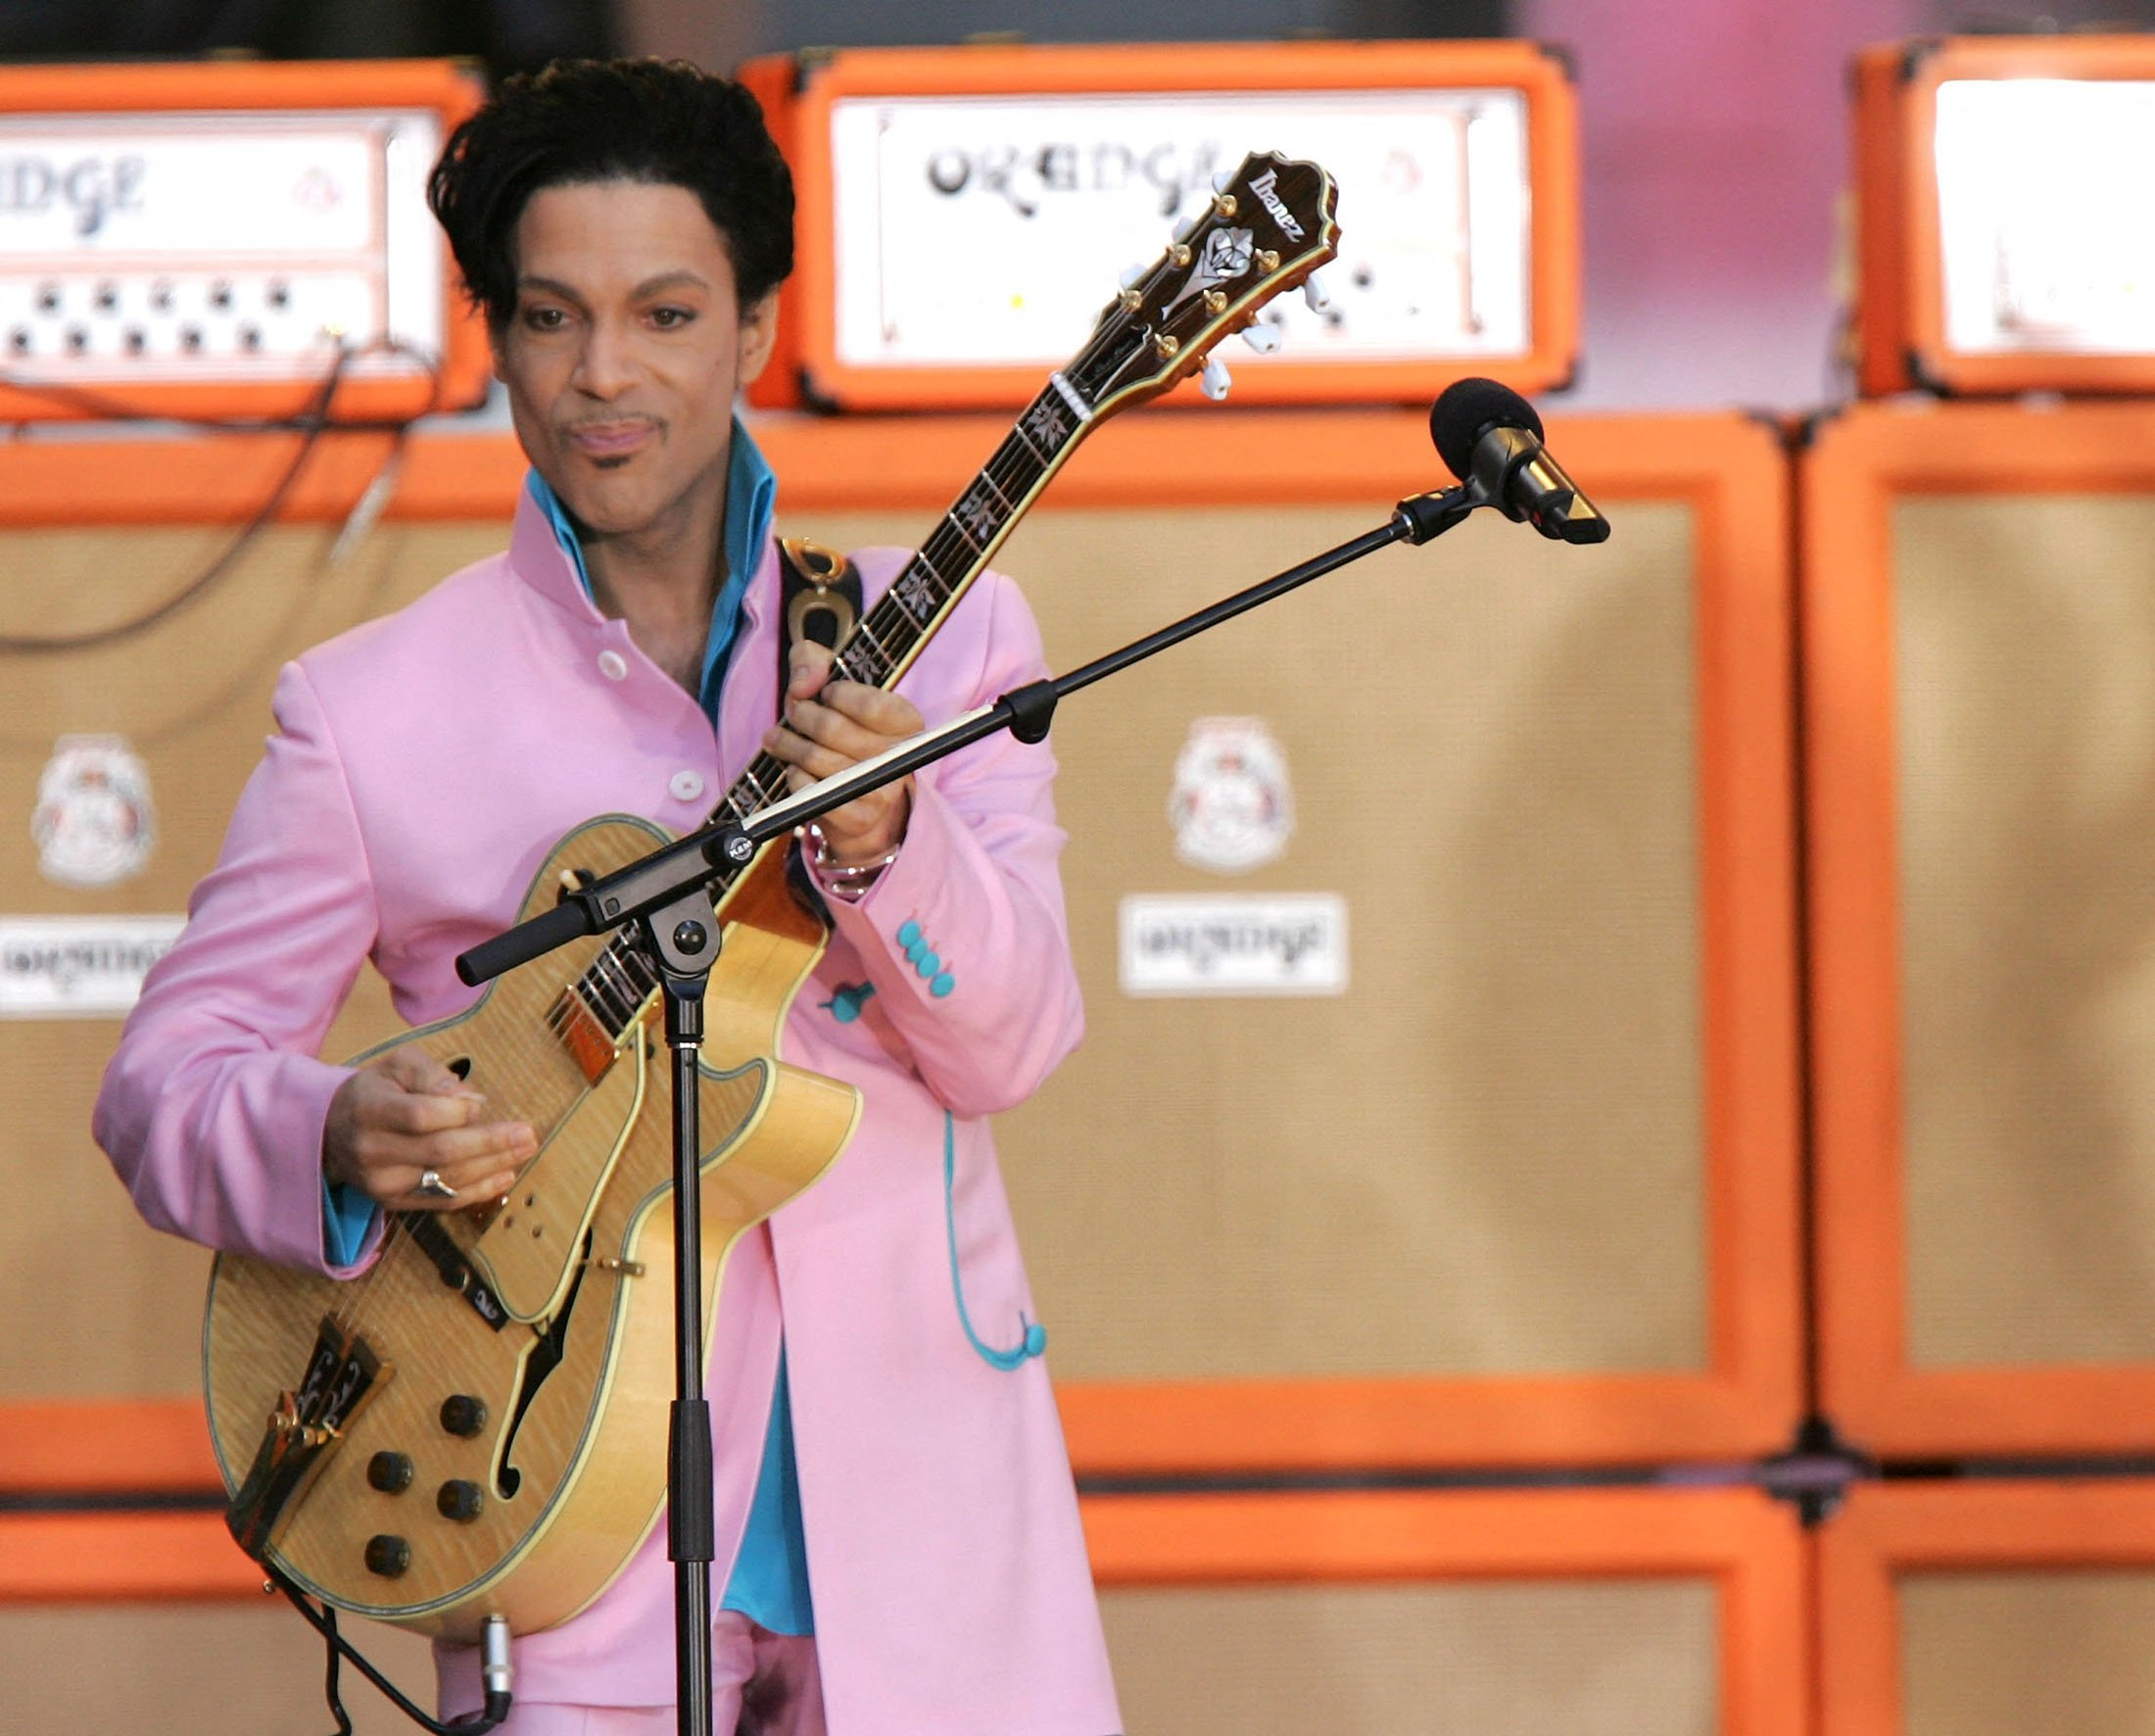 Singer Prince performs on ABC's Good Morning America Concert Series in Bryant Park in New York City, U.S., June 16, 2006. (AFP Photo)